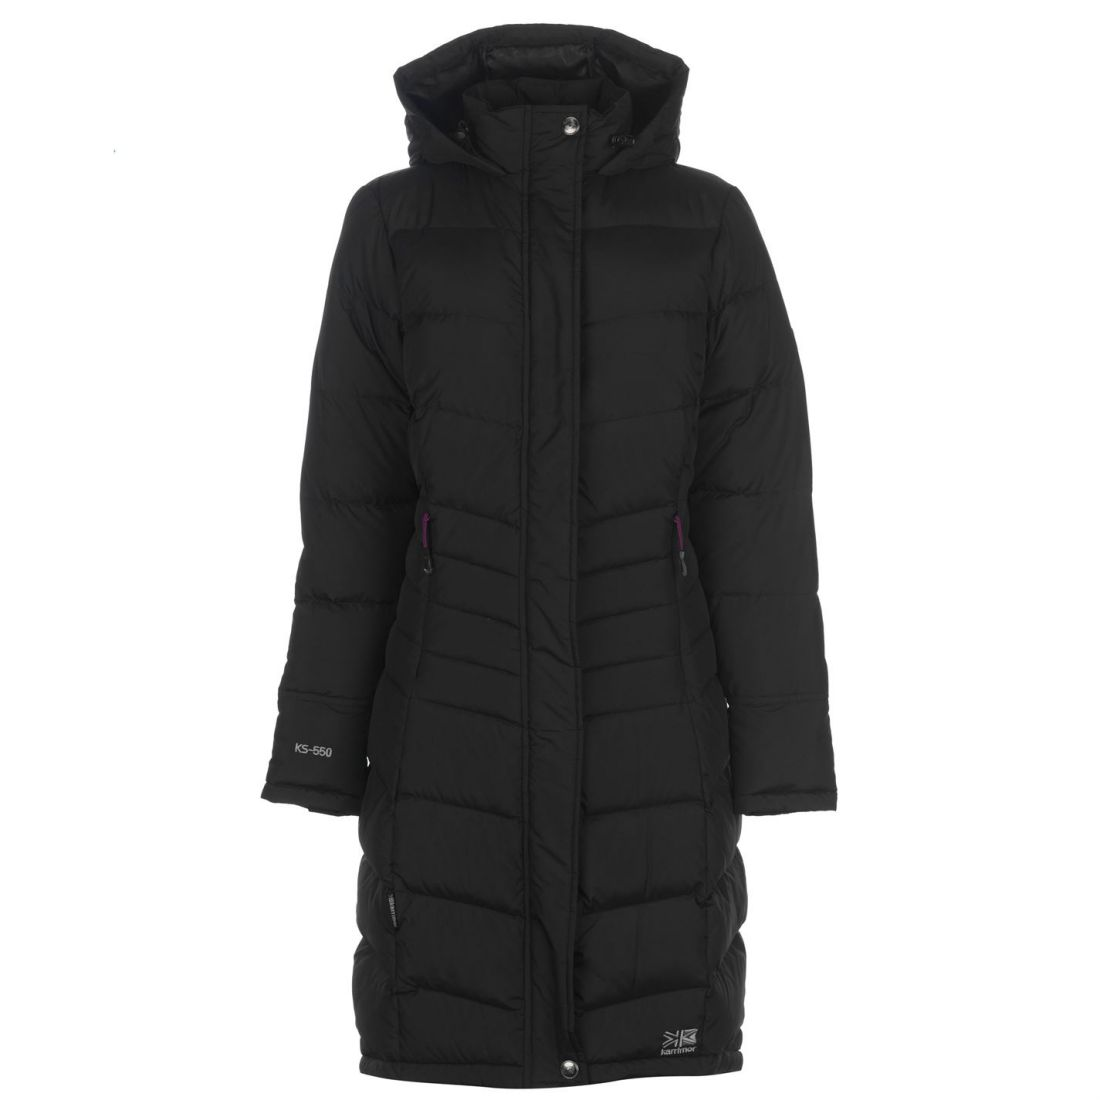 a7851a9e8631 Karrimor Womens Long Down Jacket Puffer Coat Top Sleeve Hooded Zip ...